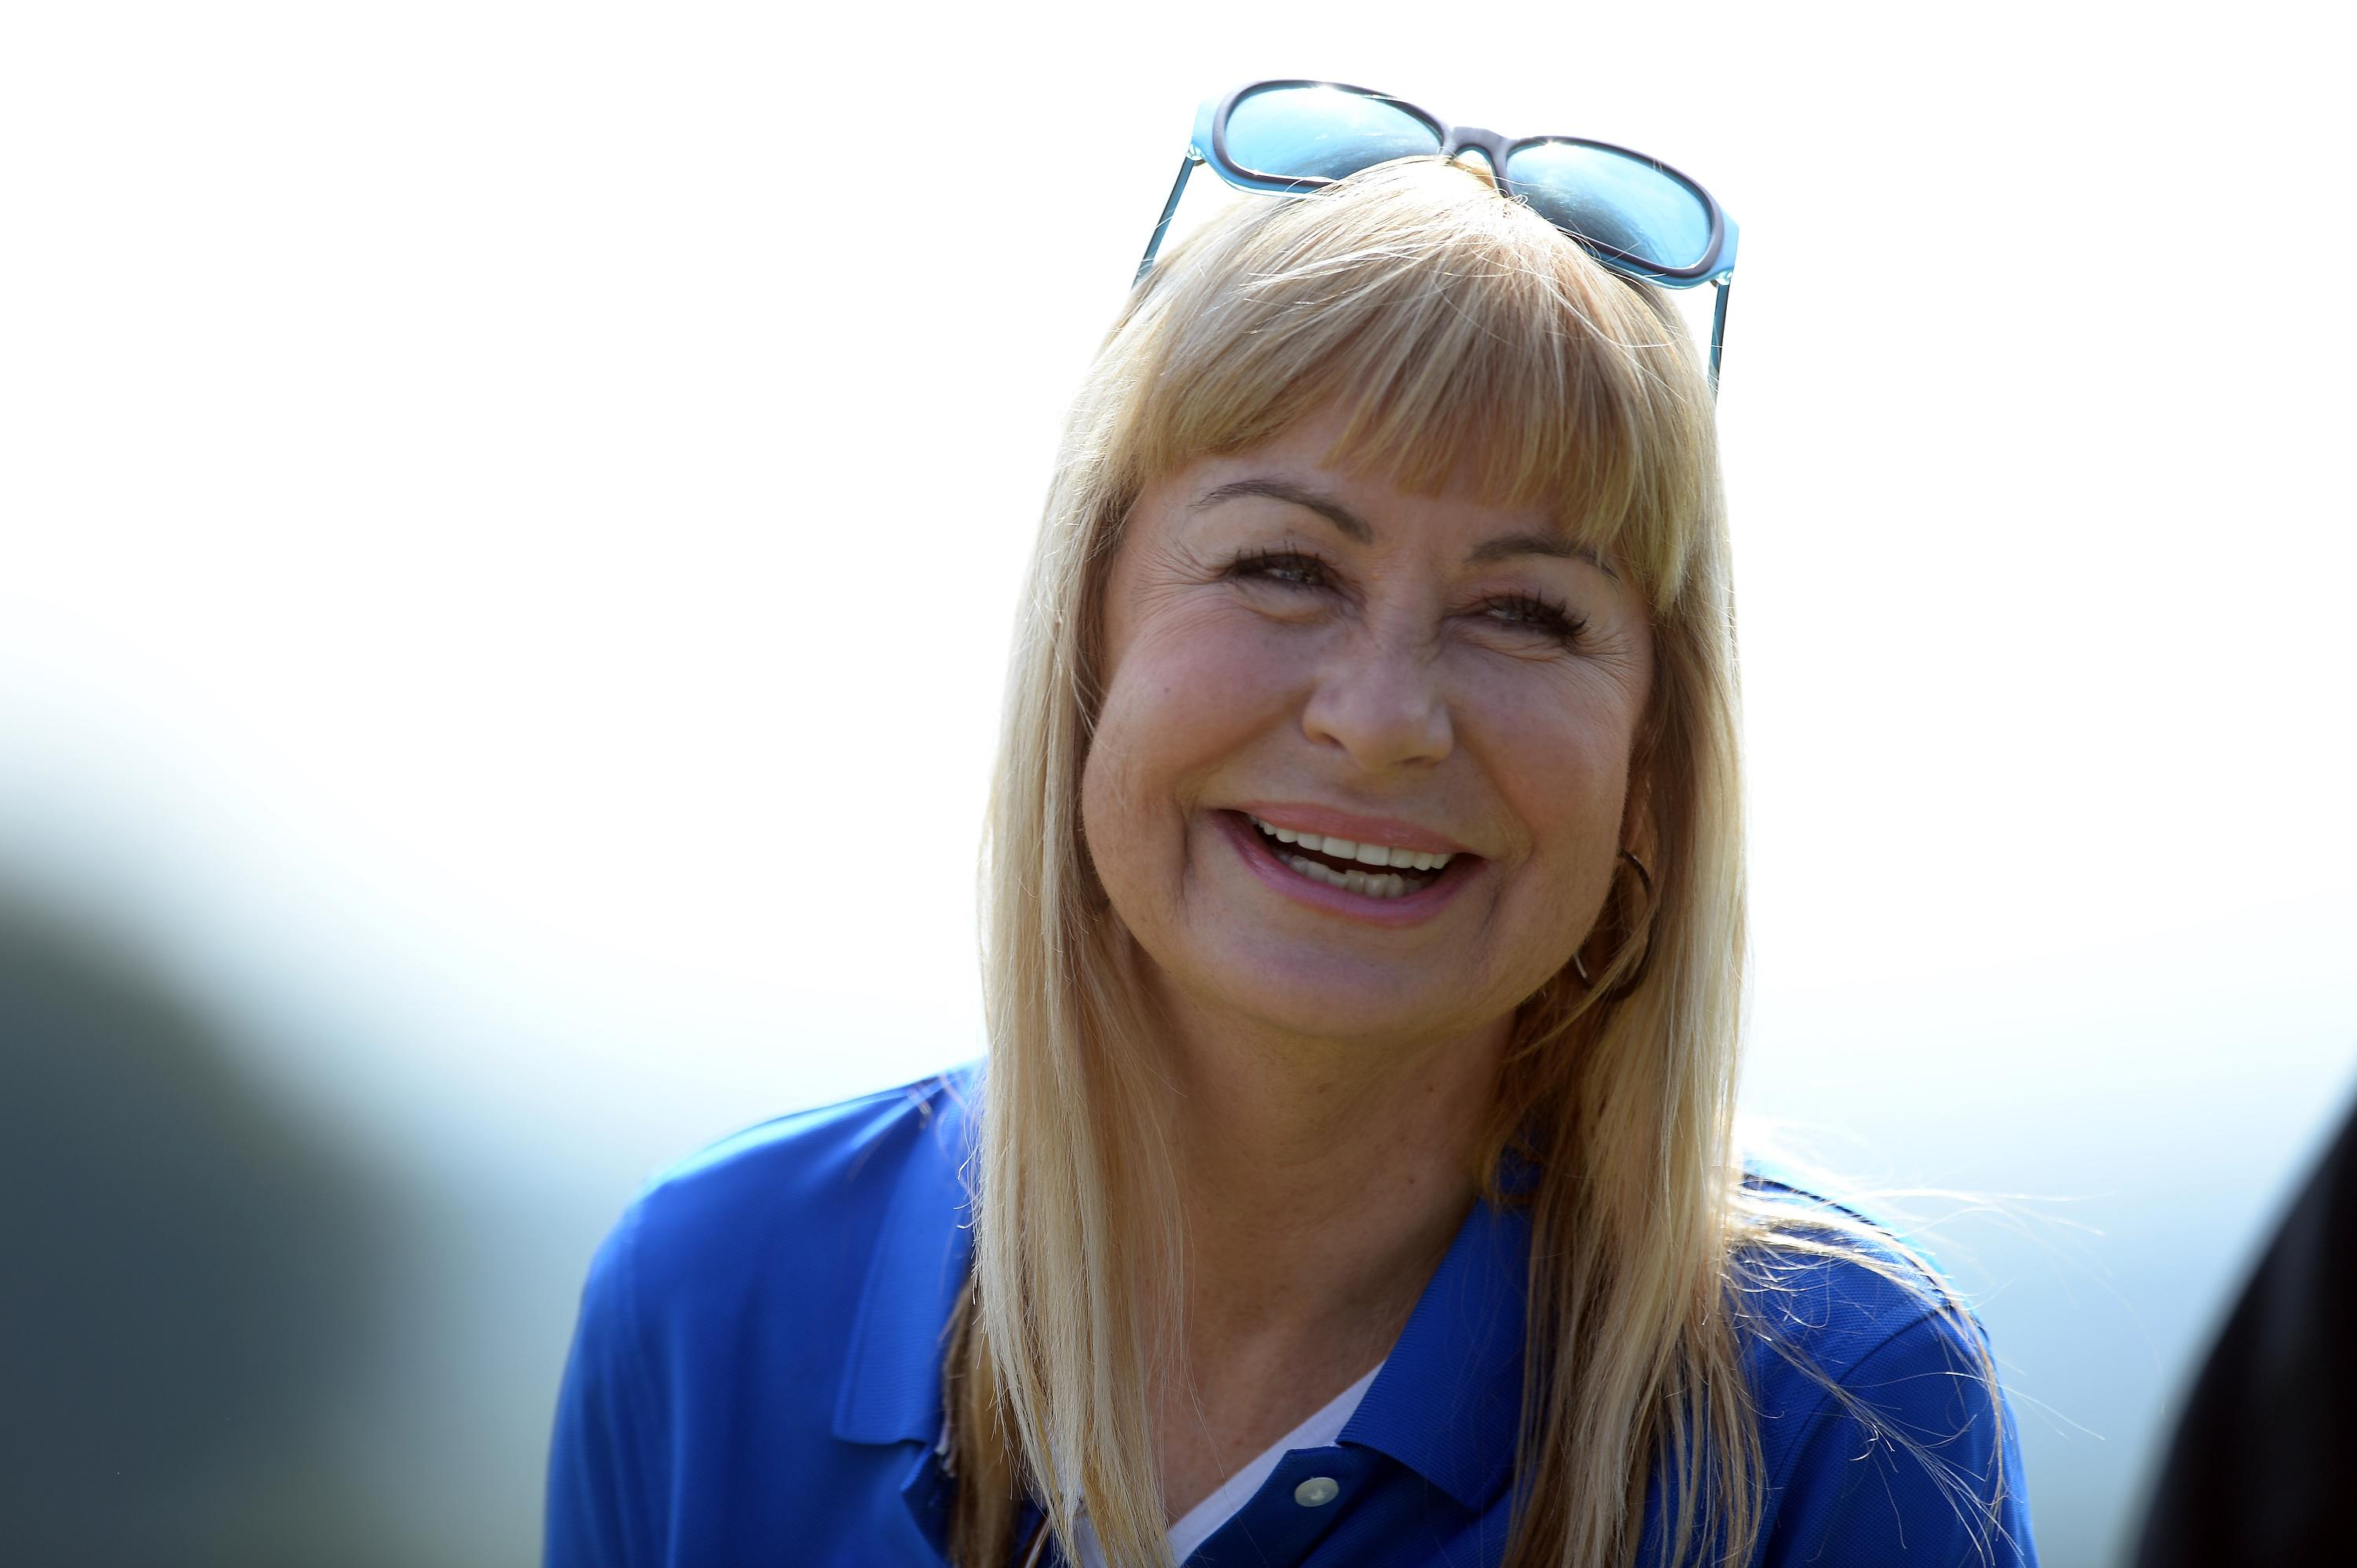 Sian Lloyd 'mortified' after causing offence with hollocaust reference